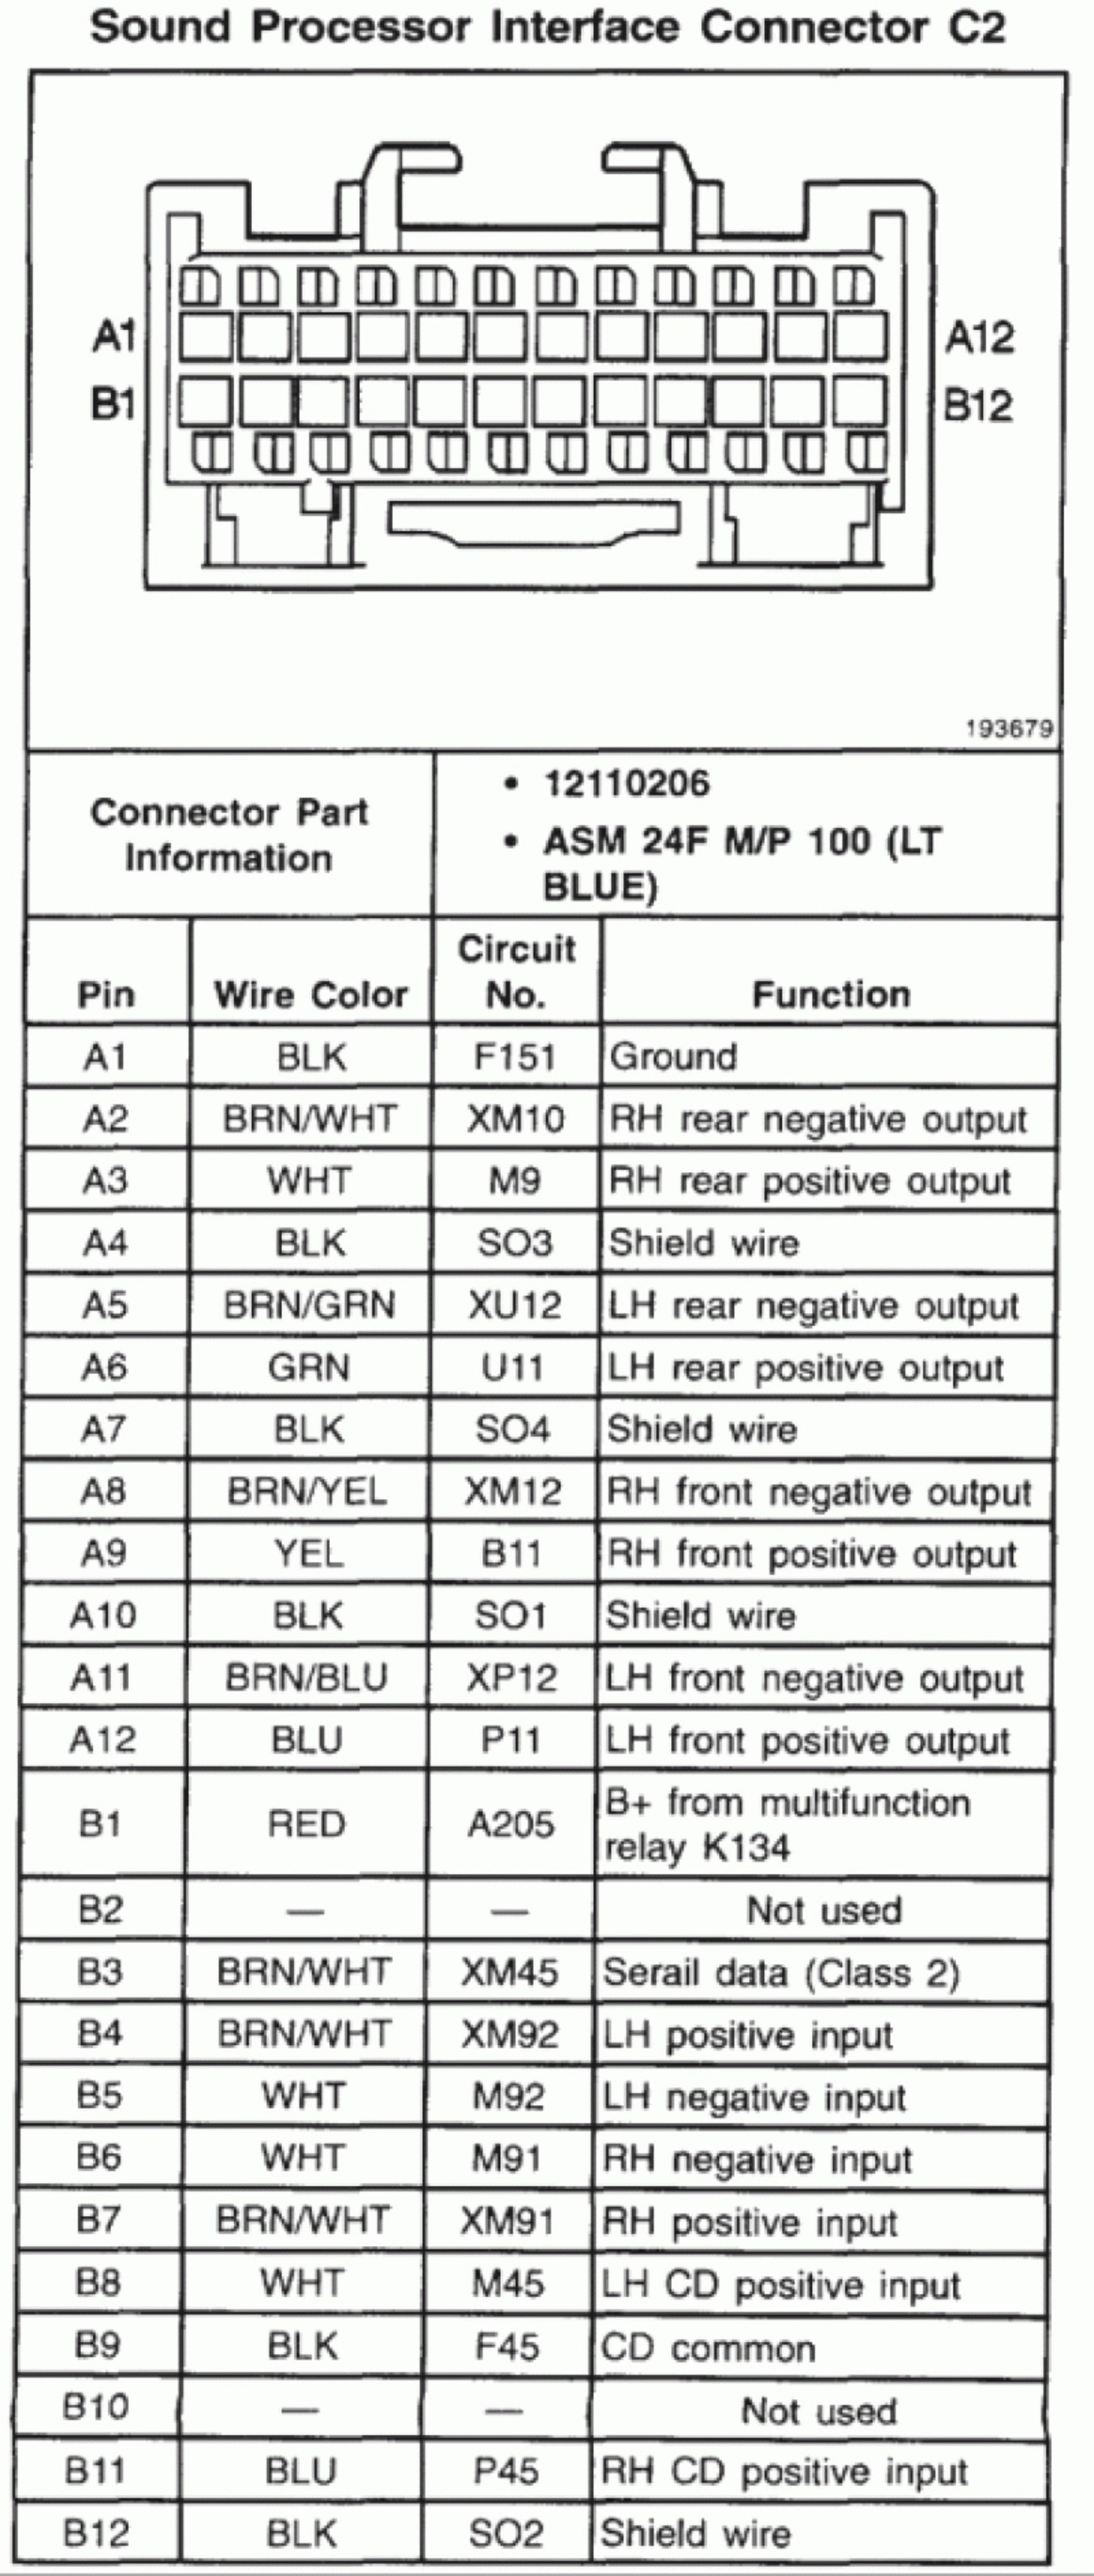 kenwood kdc 352u wiring diagram Download-Wiring Diagram Kenwood Kdc 248u Best Kenwood Wiring Harness Diagram Kenwood Kdc 352u Wiring Diagram 6-h